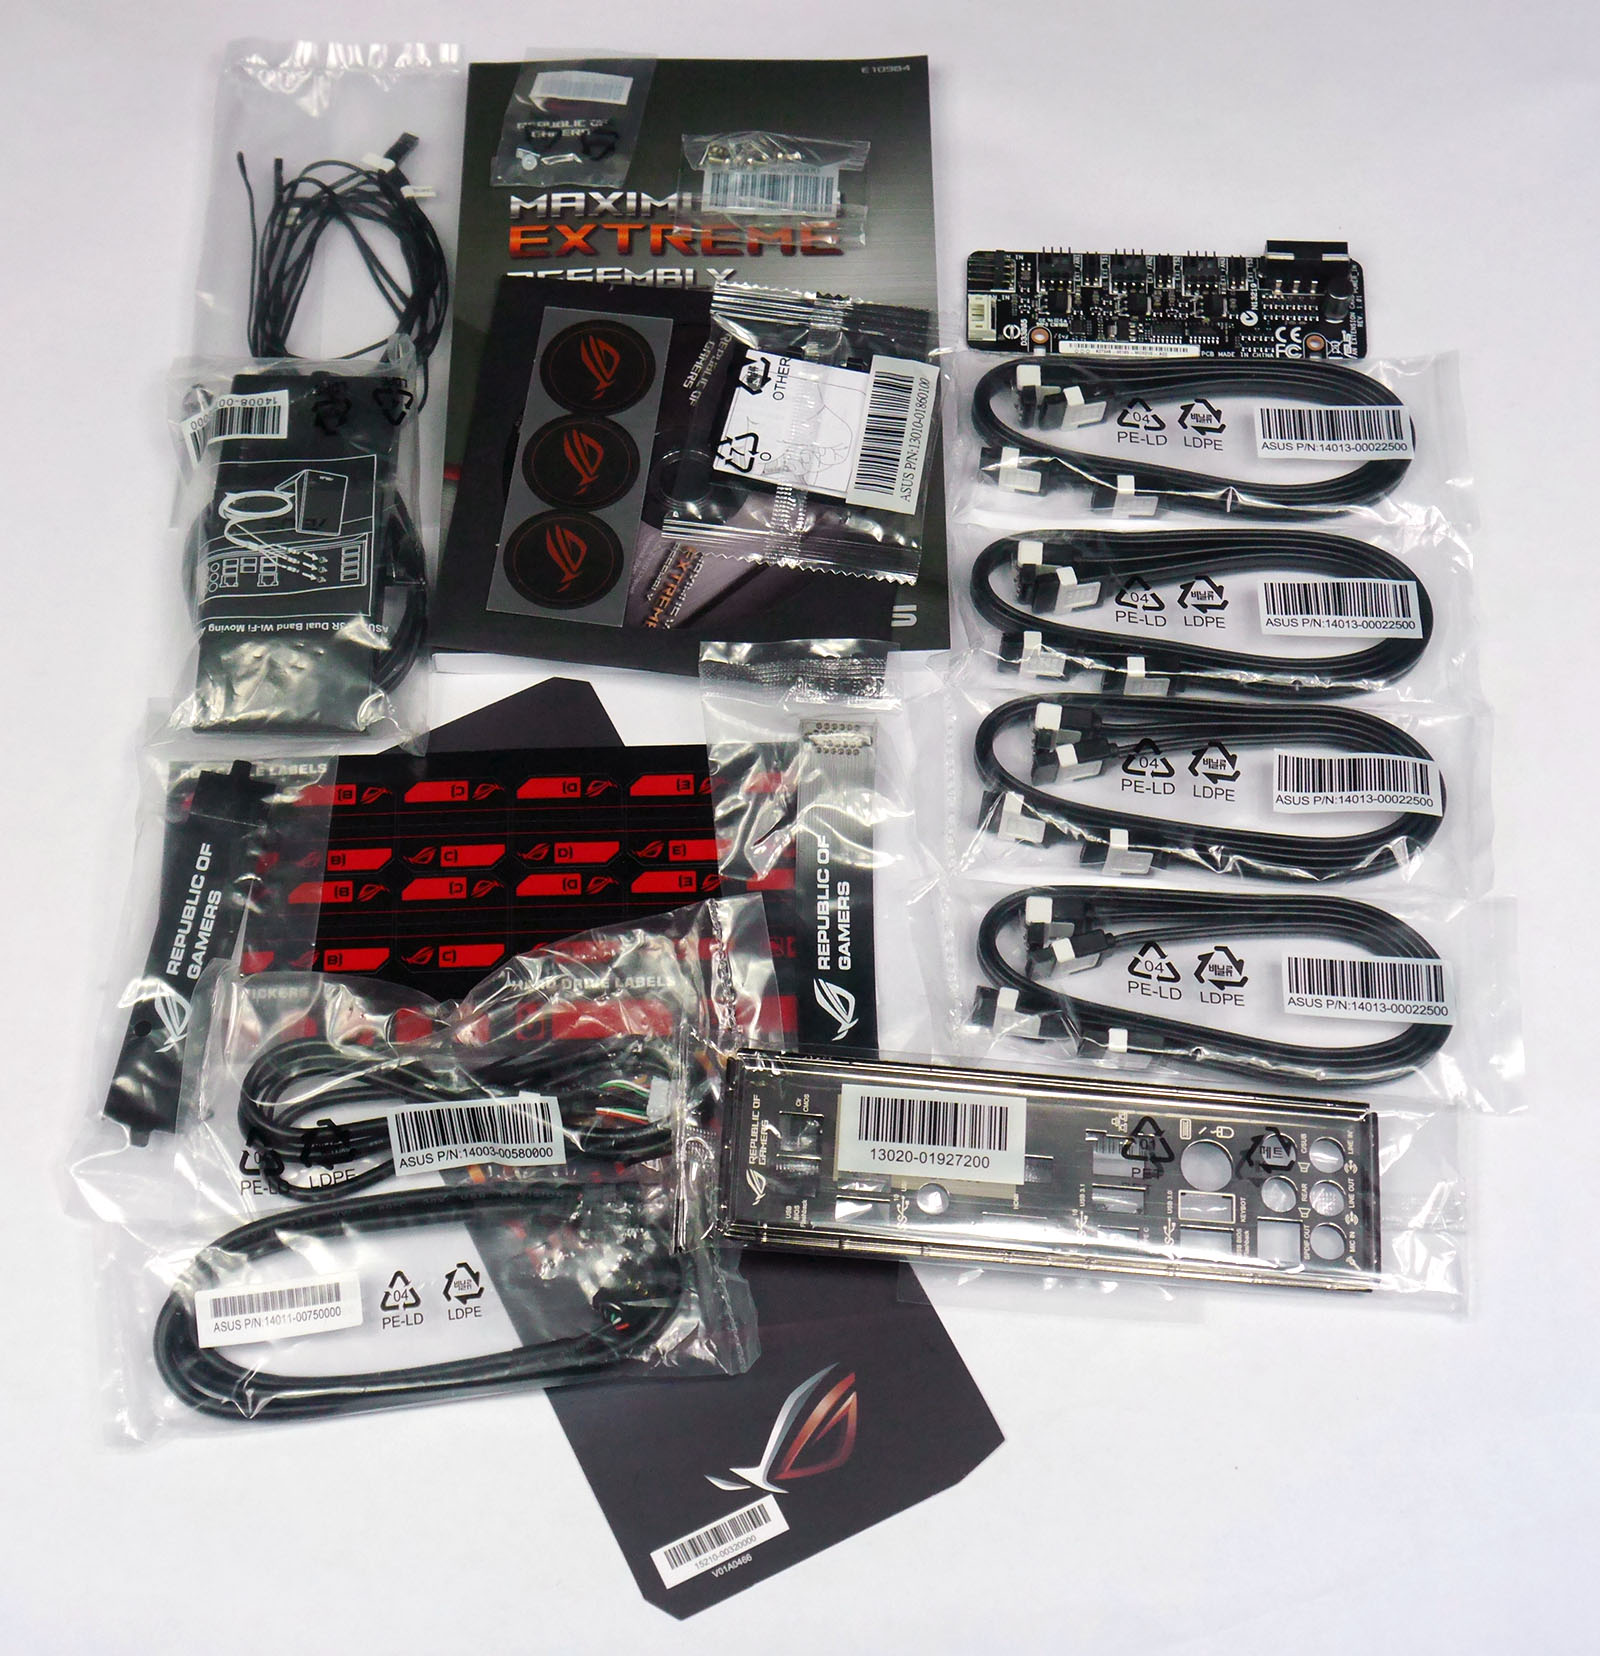 ASUS Maximus VIII Extreme Assembly - Accessories